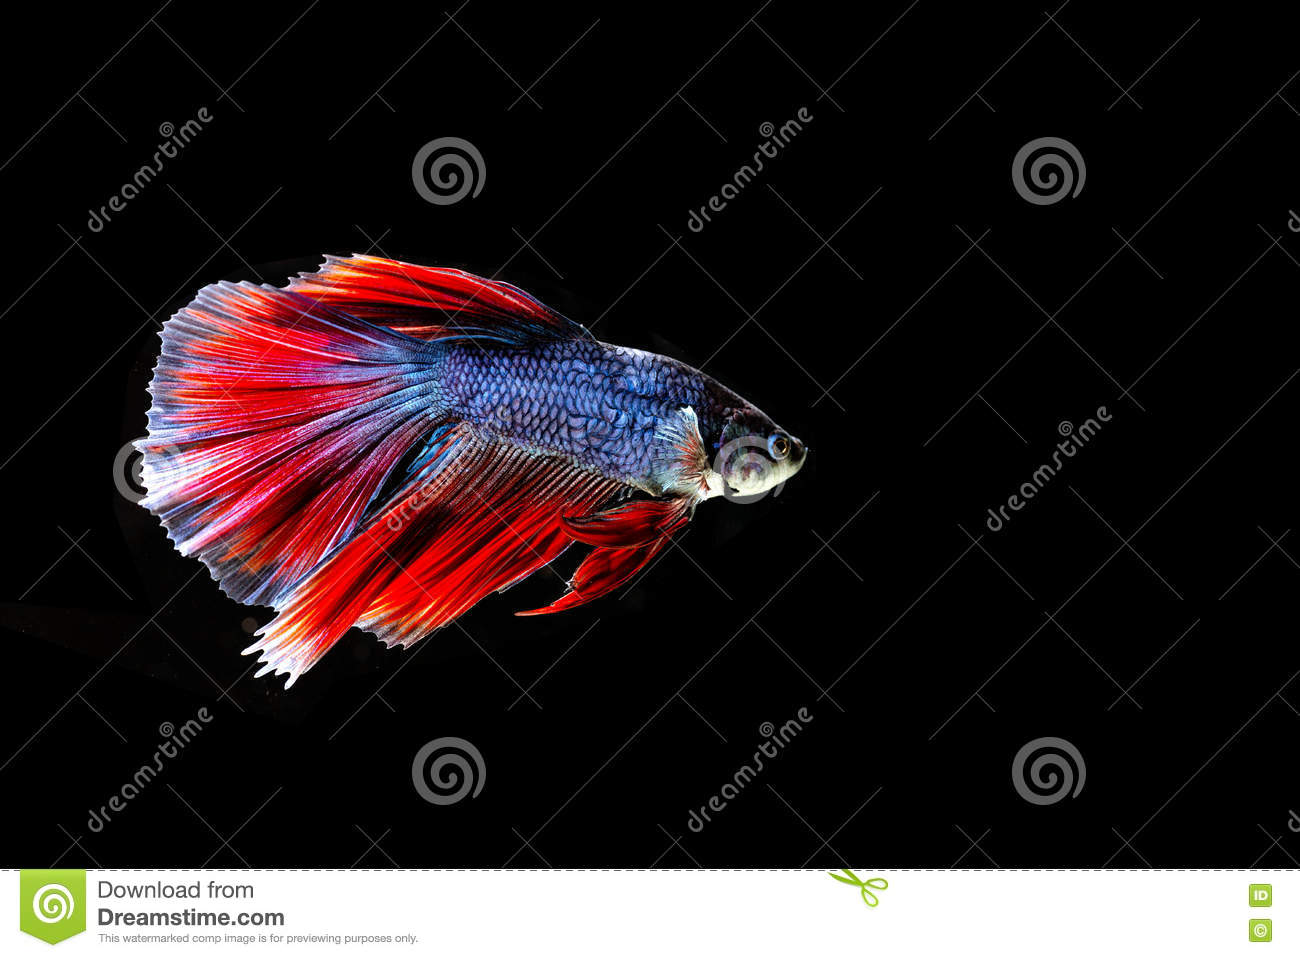 Beautiful color betta fish stock photo. Image of colorful - 79019286